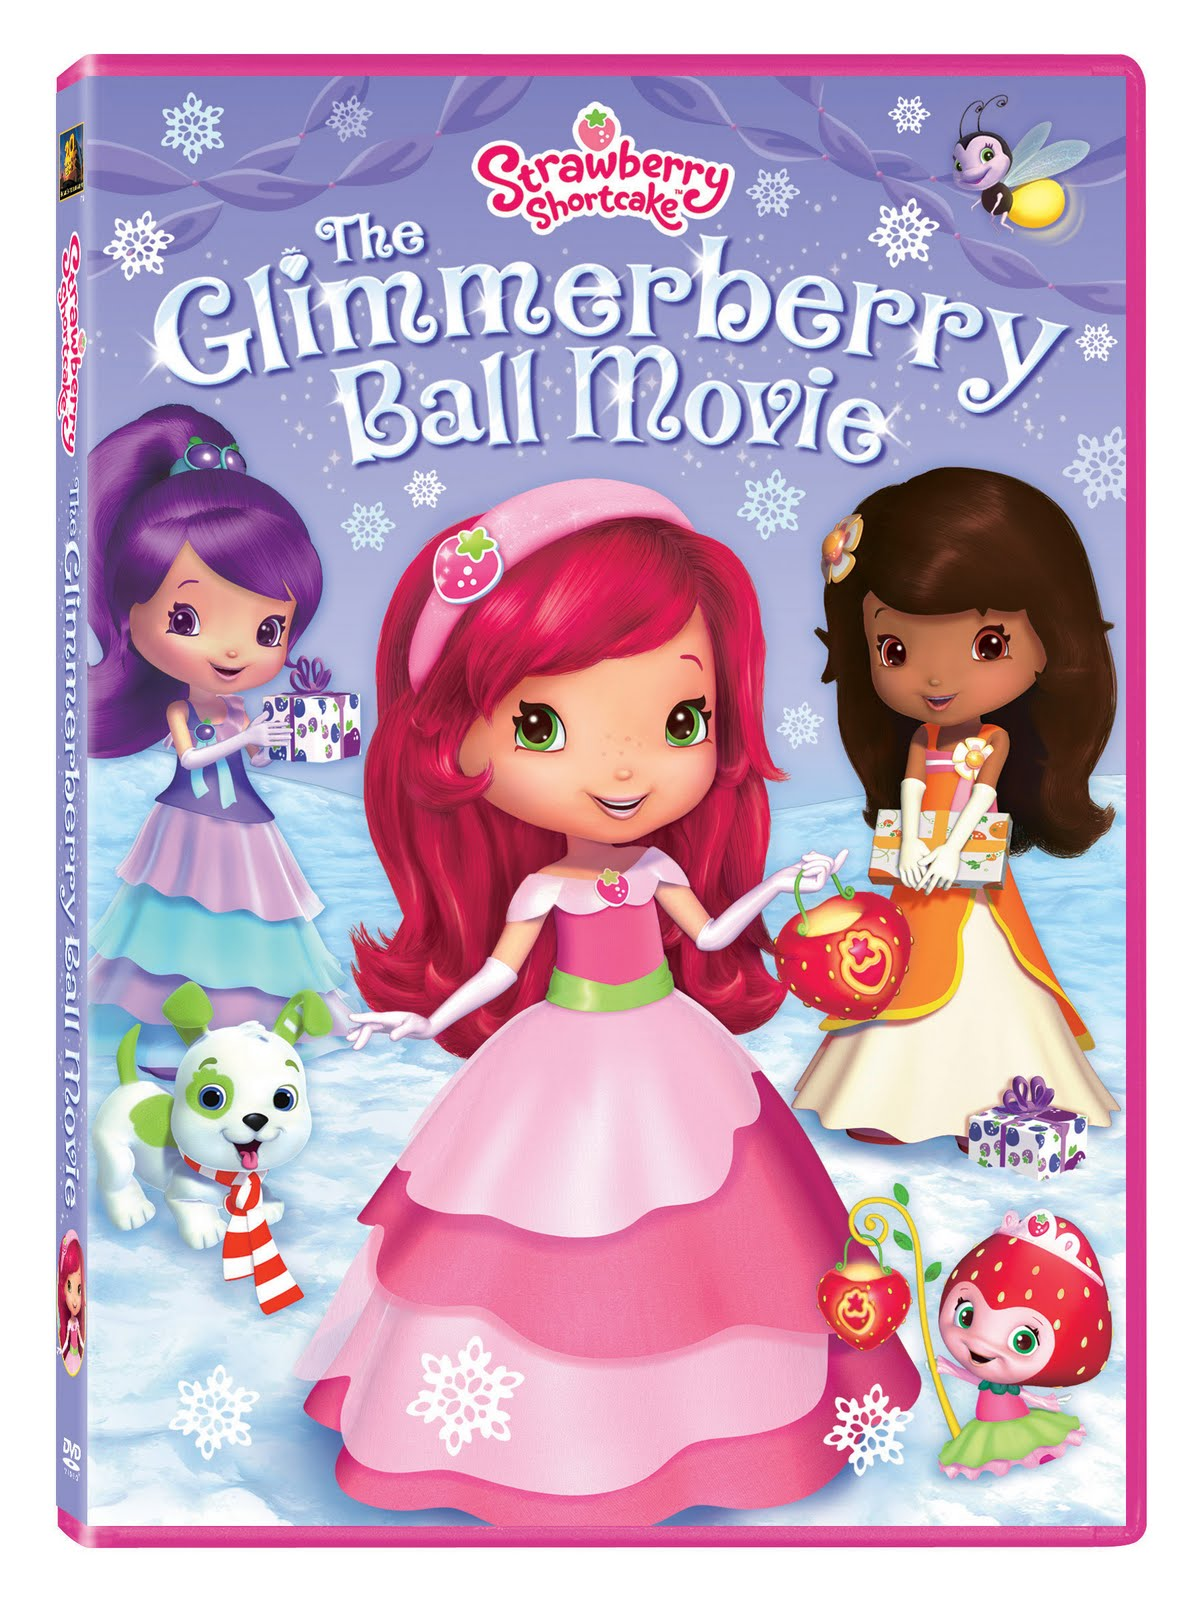 Jam movie reviews jam reviews strawberry shortcake the jam reviews strawberry shortcake the glimmerberry ball movie from american greetings 20th century fox home entertainment m4hsunfo